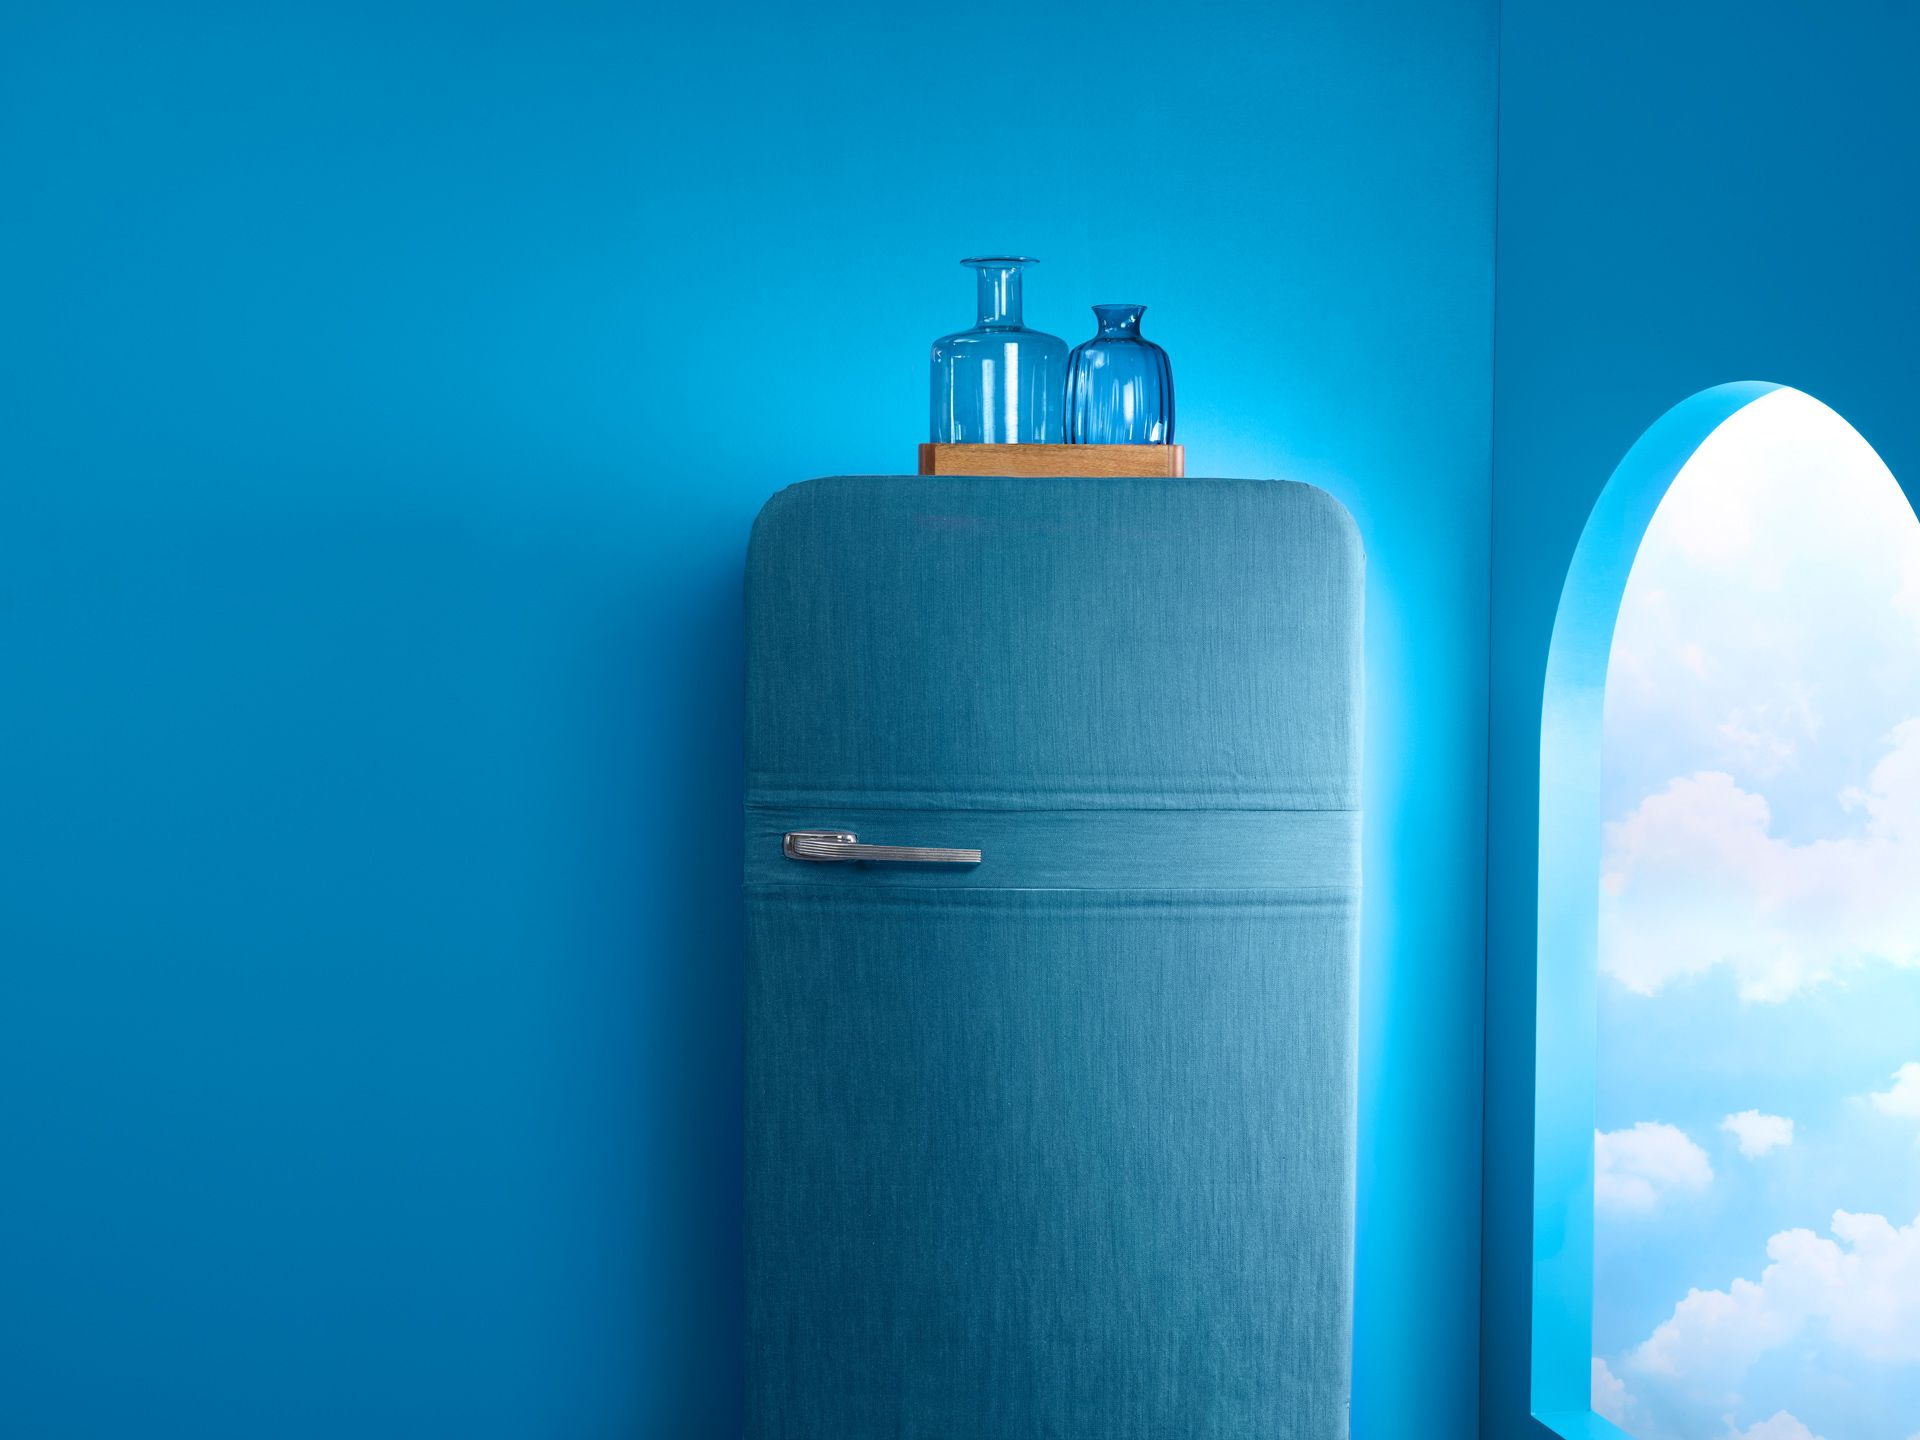 Blue room with a blue fridge and fake looking blue sky through a rounded window.